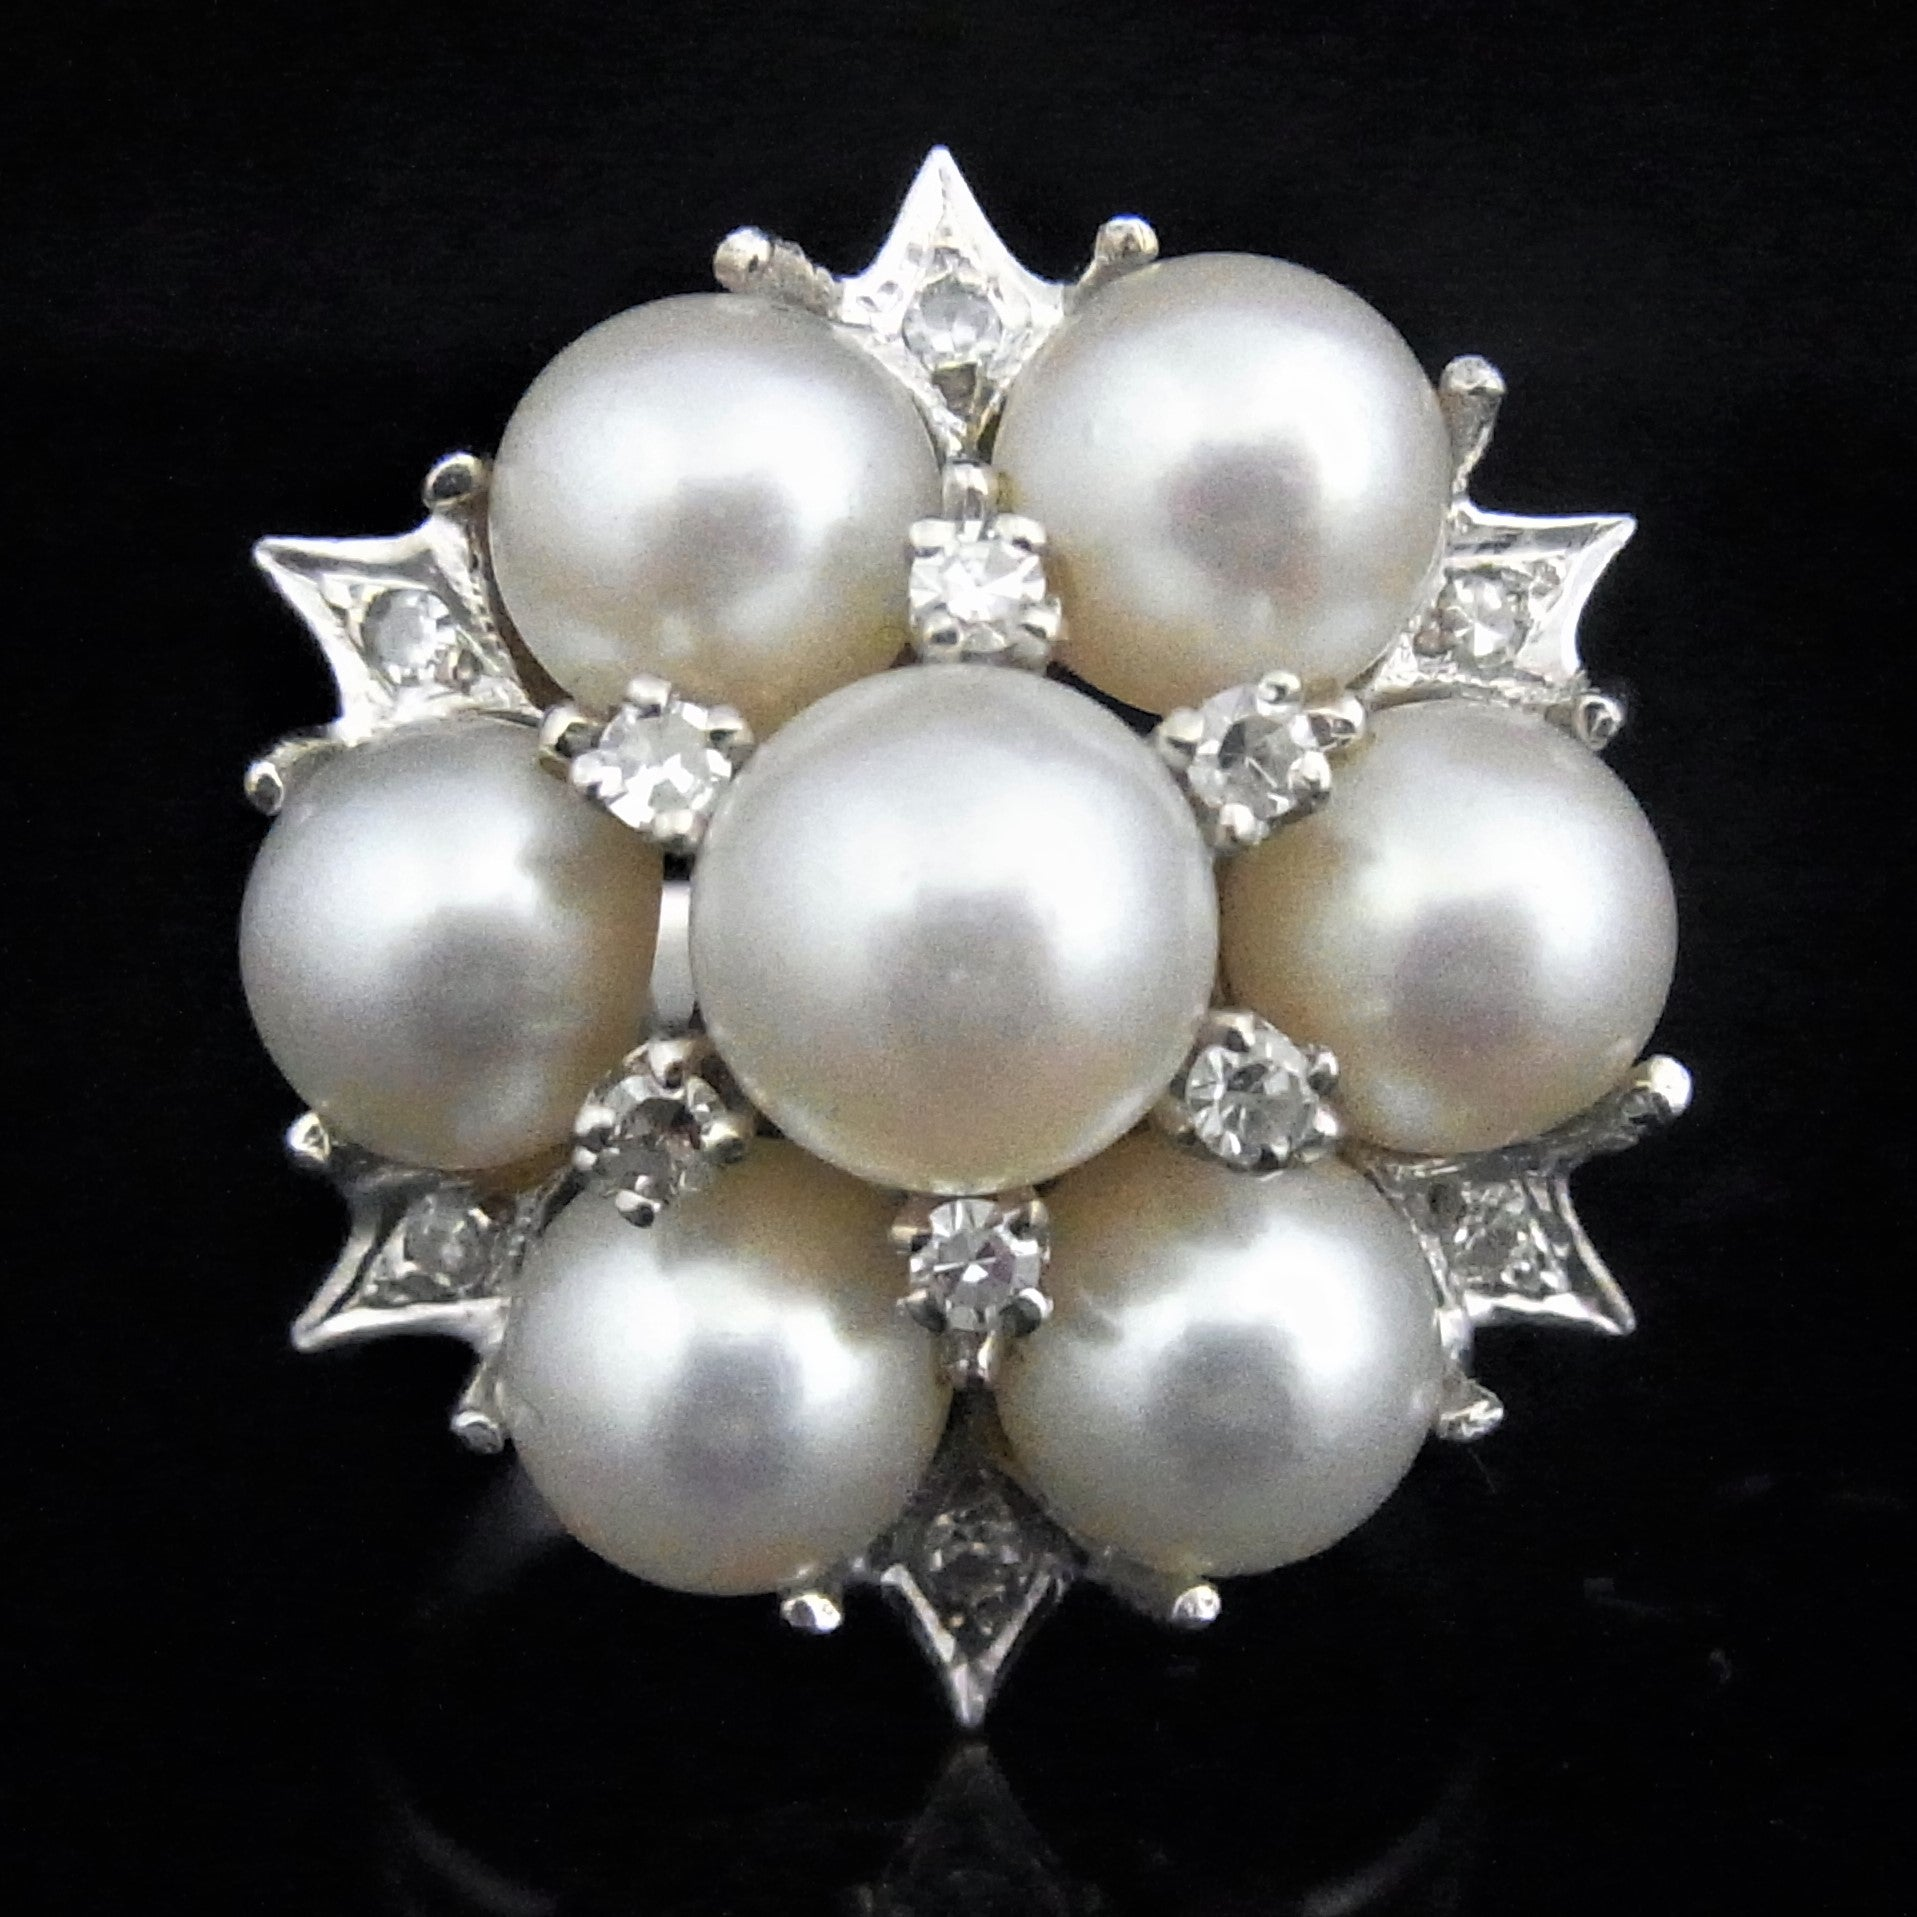 9bae20e0d Vintage Diamond Pearl Cocktail Ring 14k White Gold Snowflake Retro Estate  c1950s Snowflake Flower sohojewelers ...